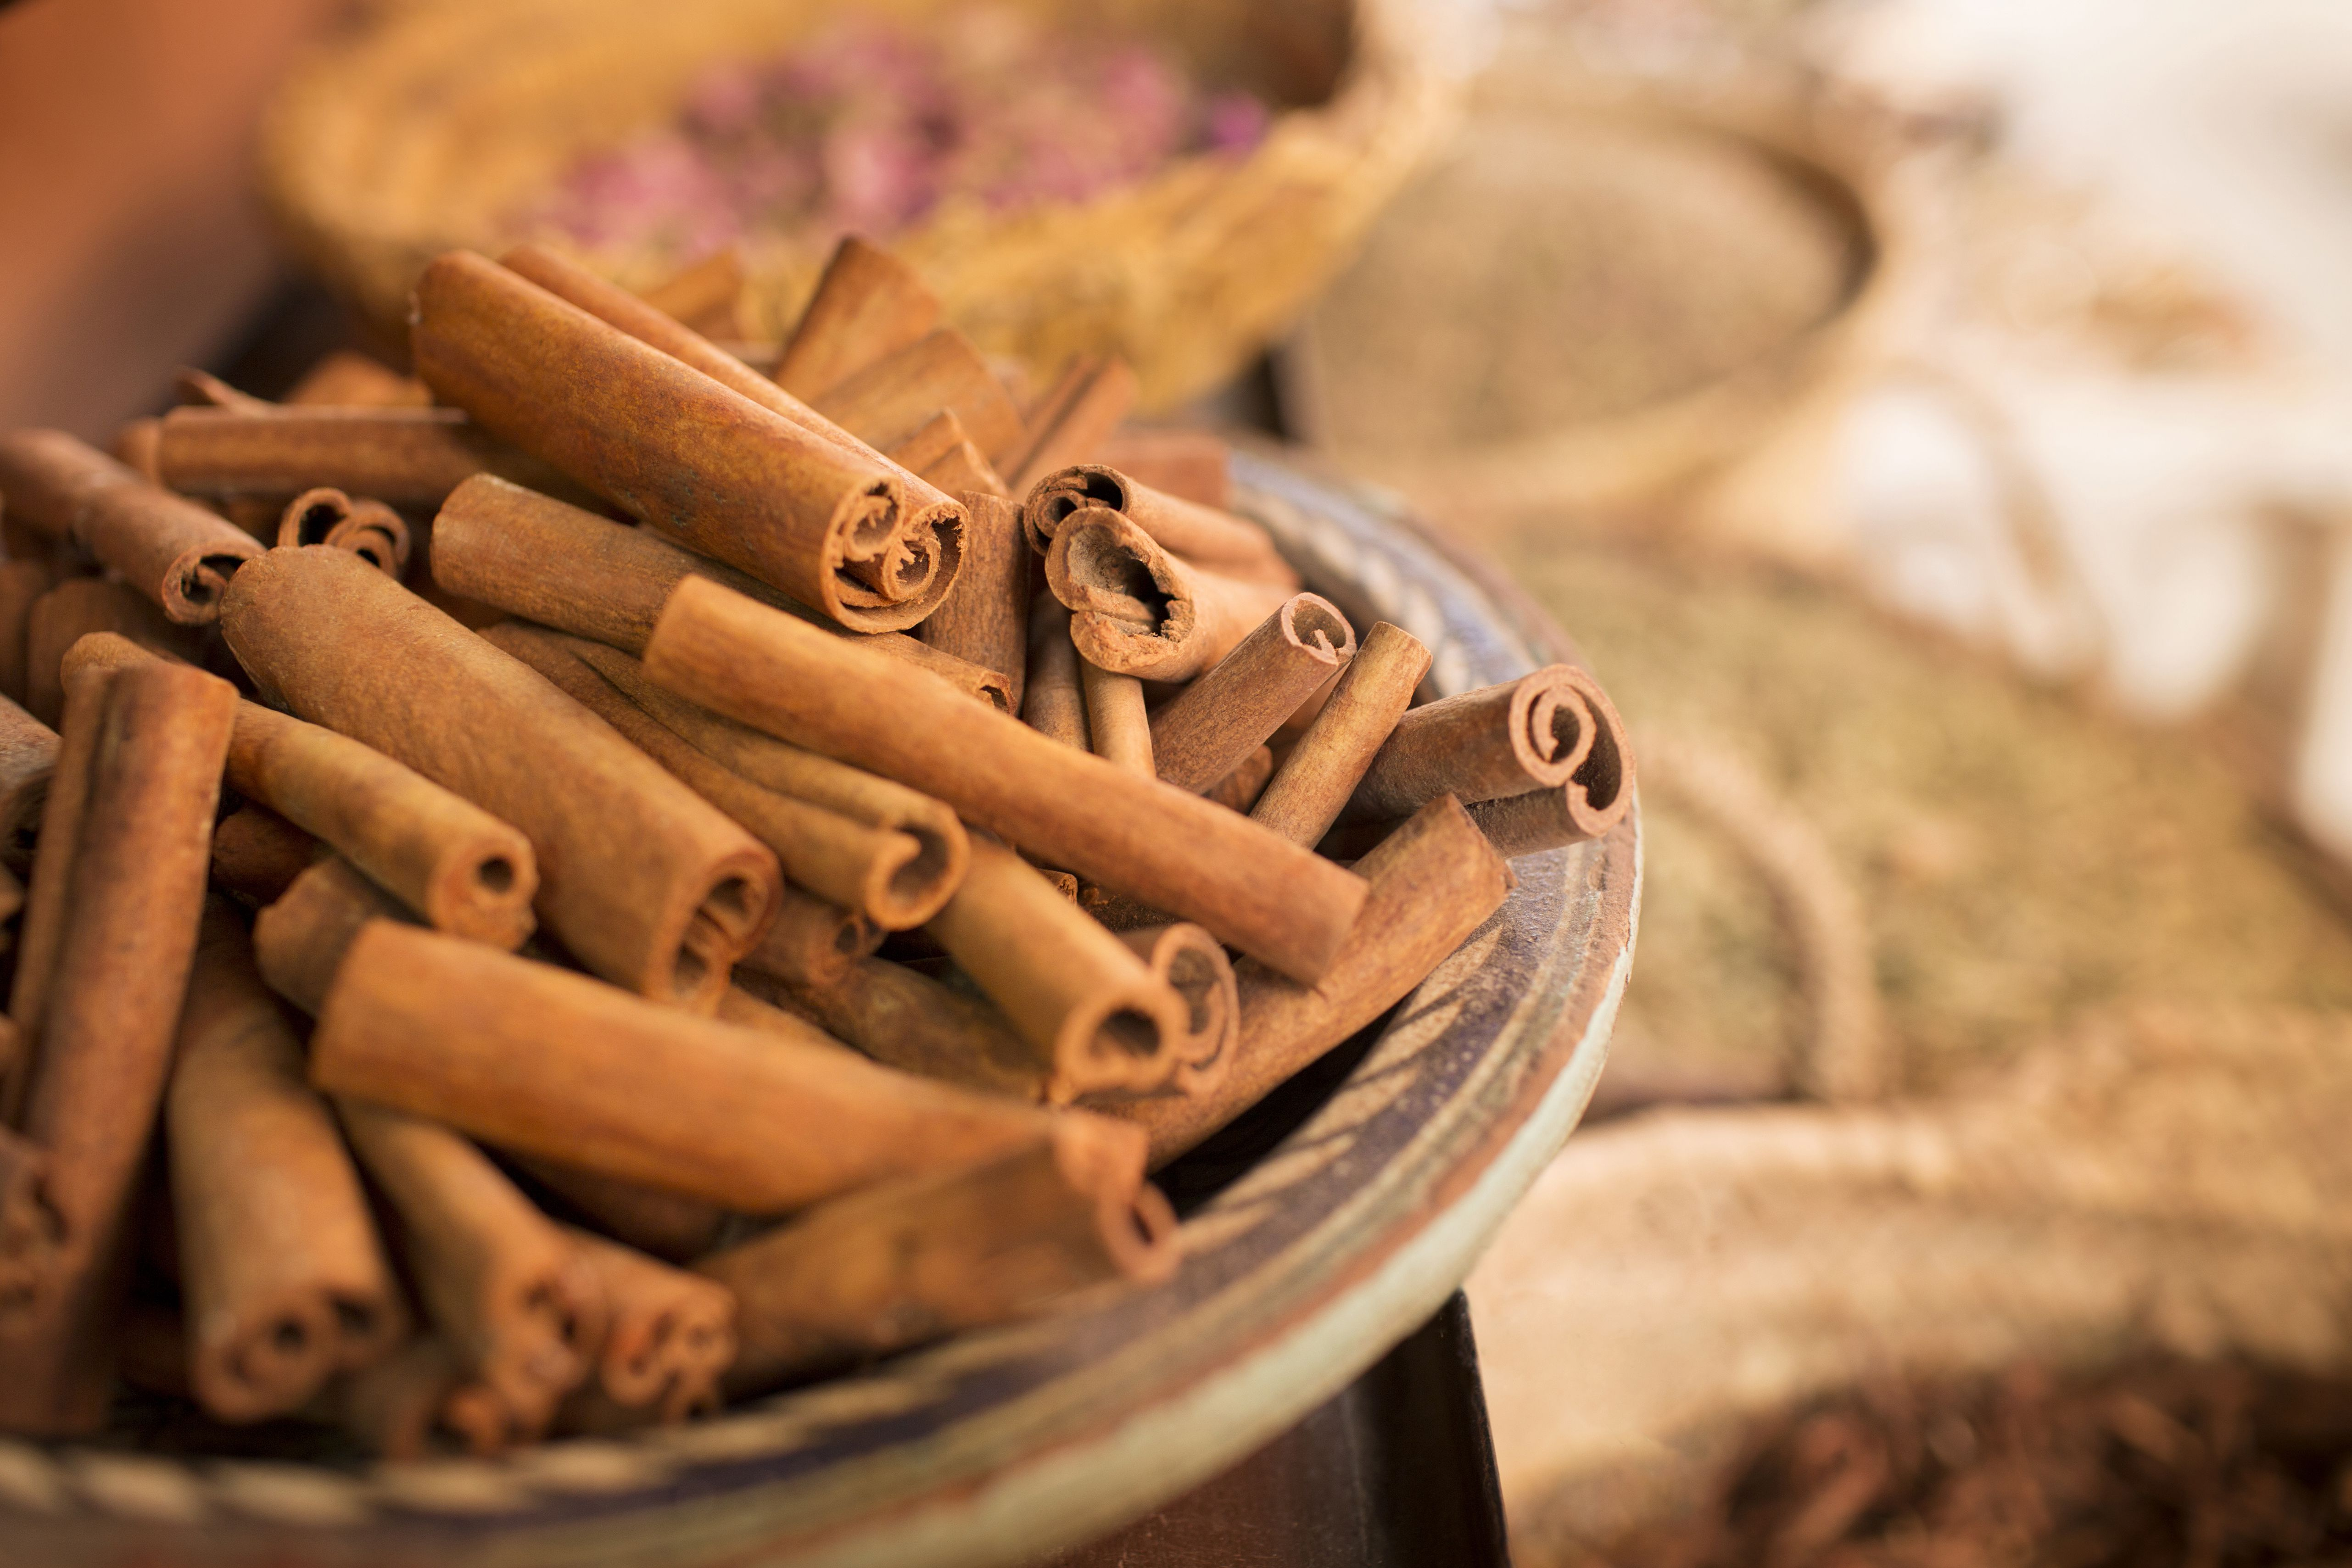 Cinnamon sticks on plate and other spices in background